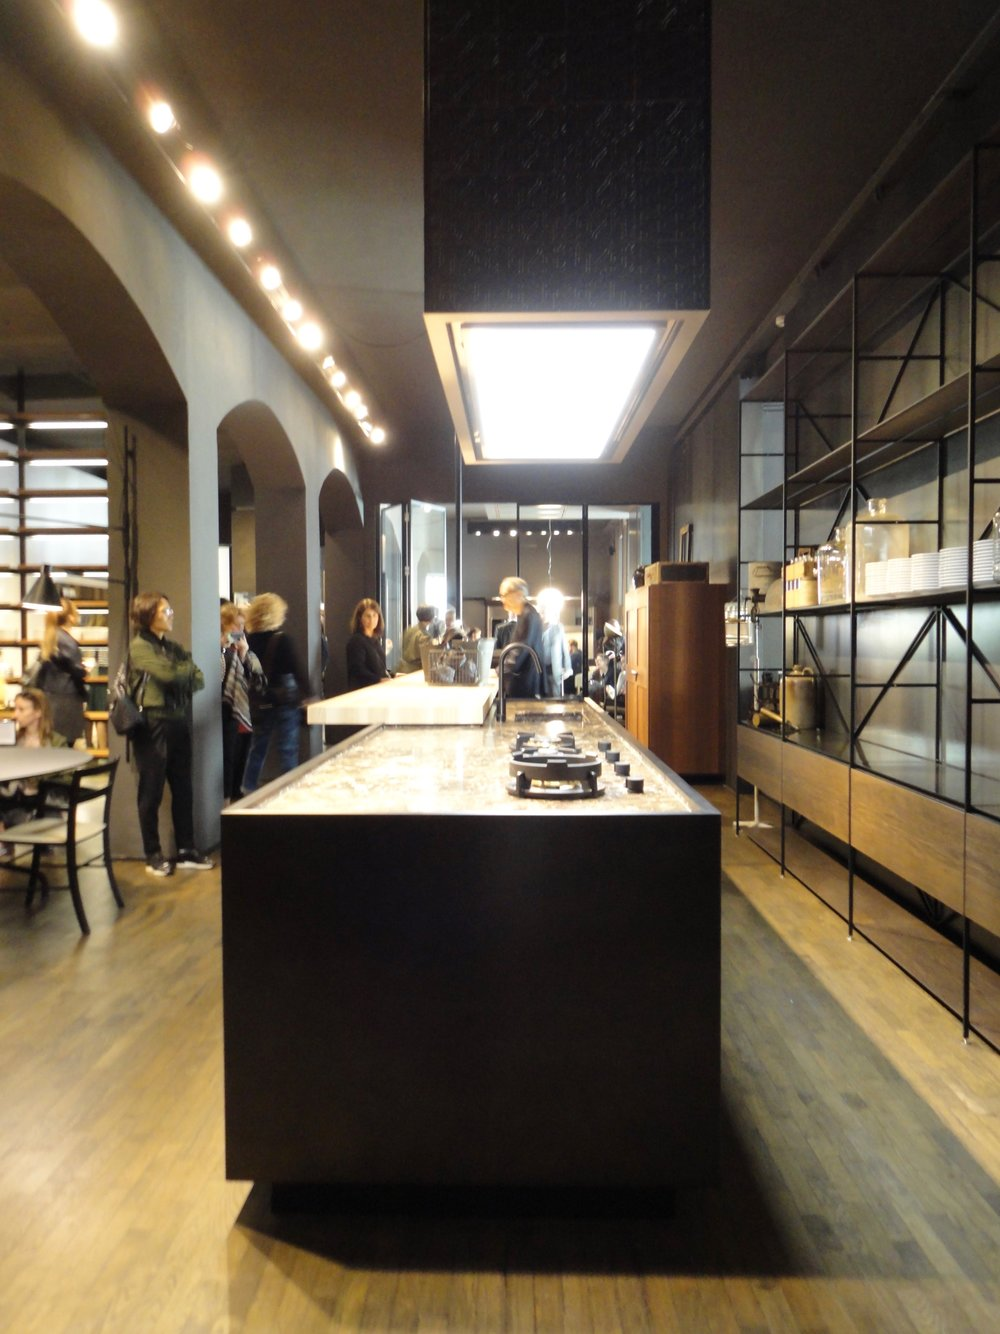 A furniture-like kitchen design at Boffi